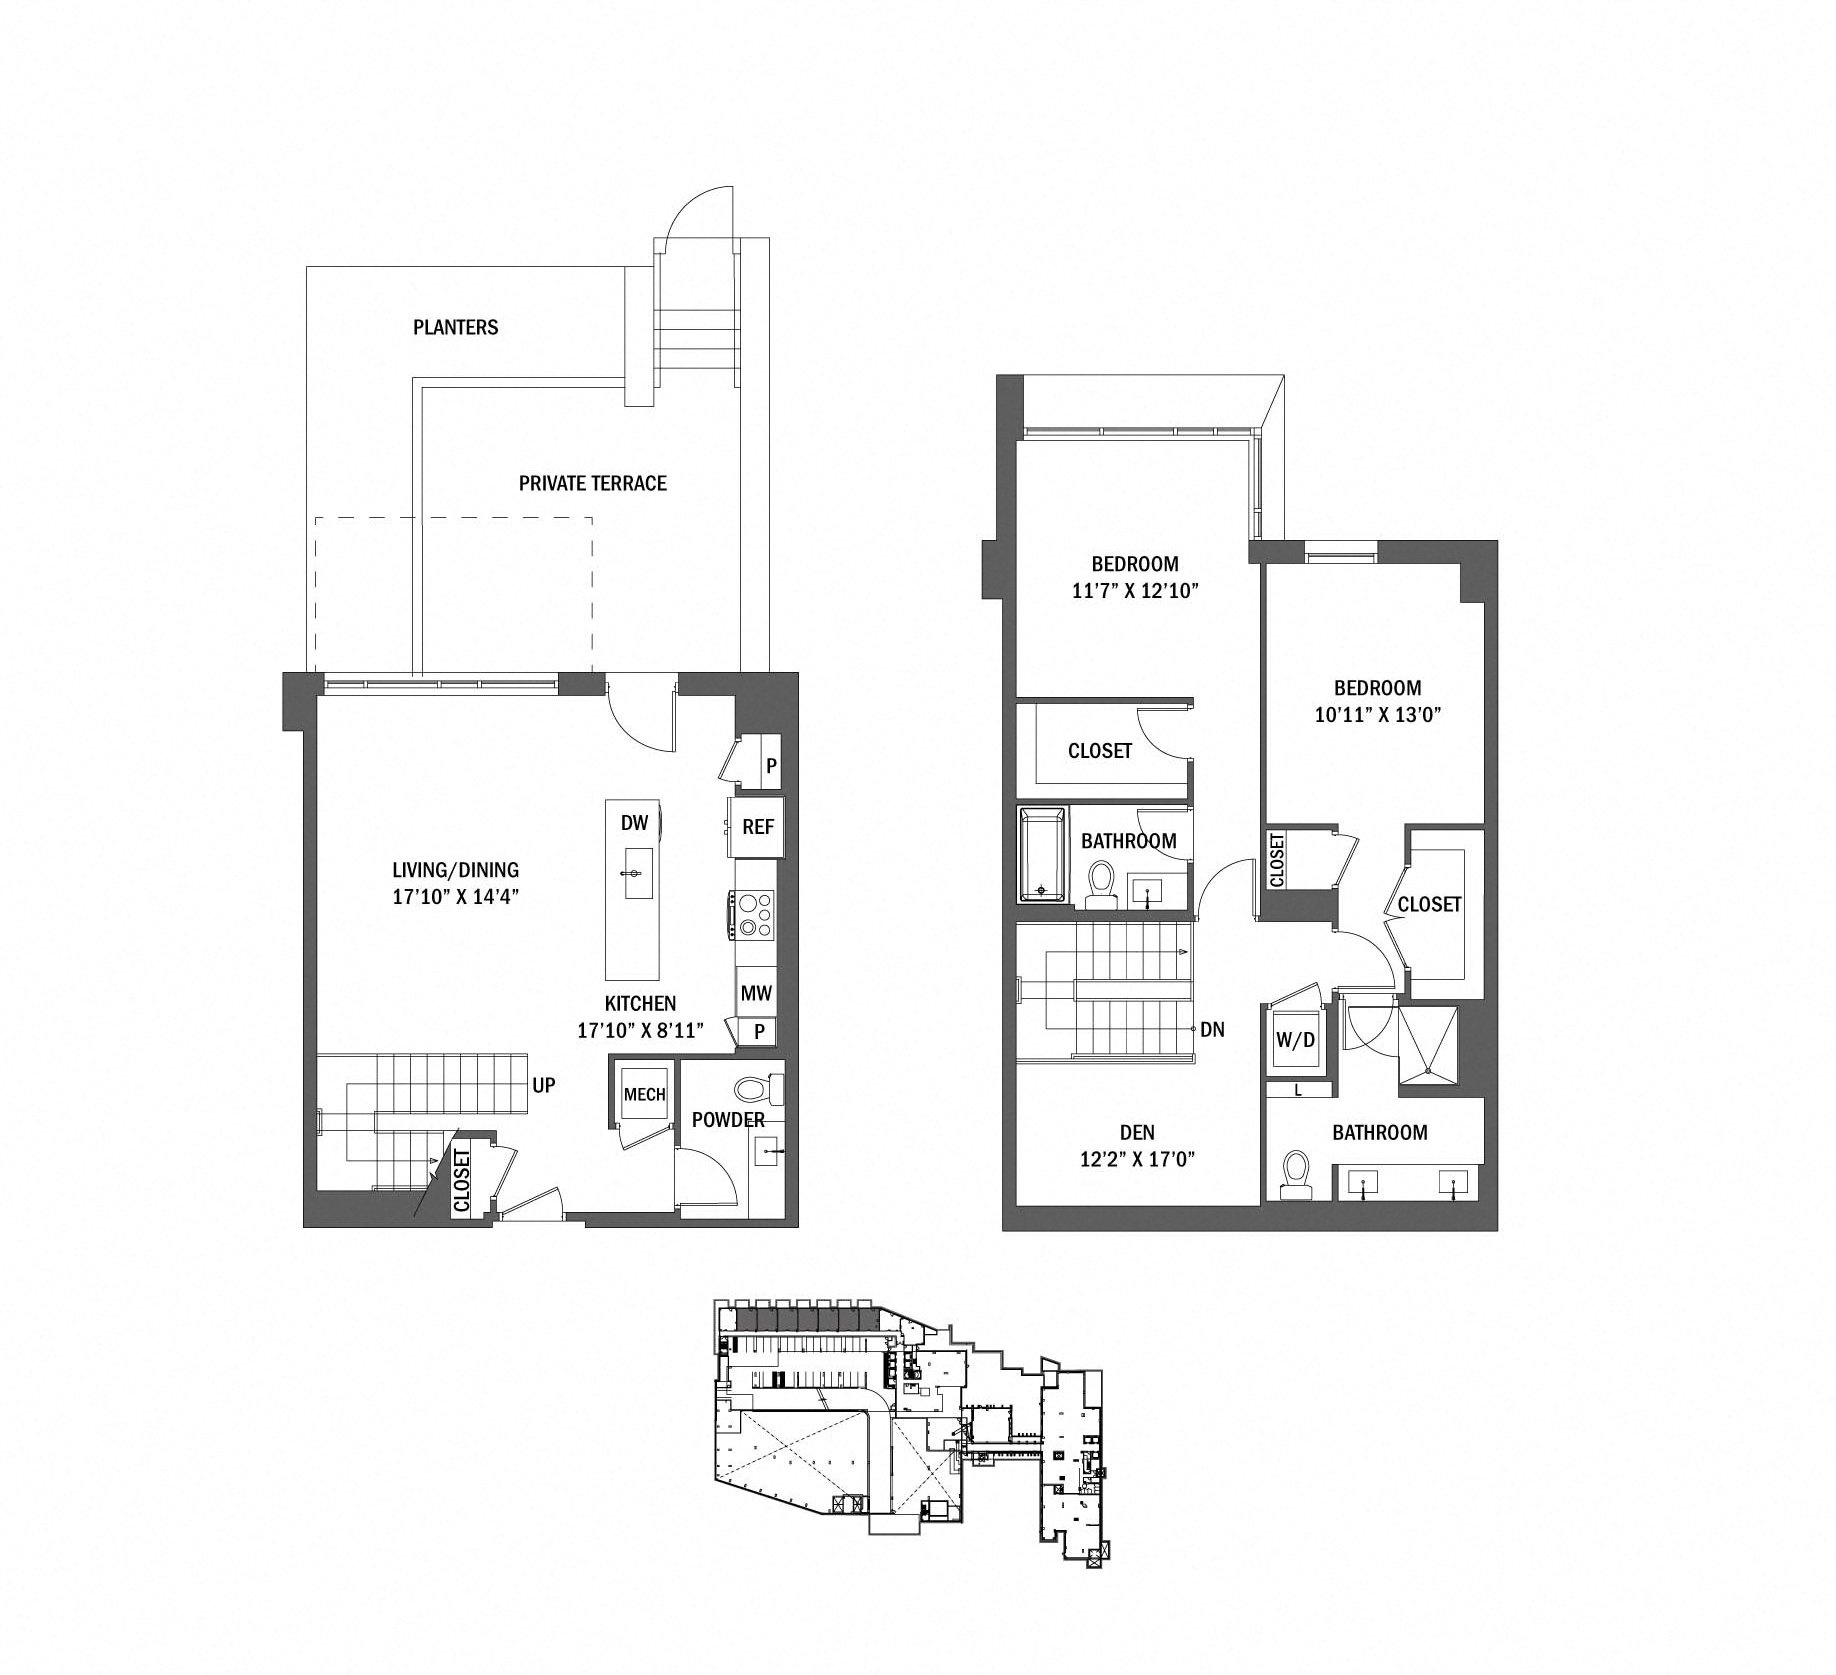 P0625338 n02 gp n08 gp 2 floorplan